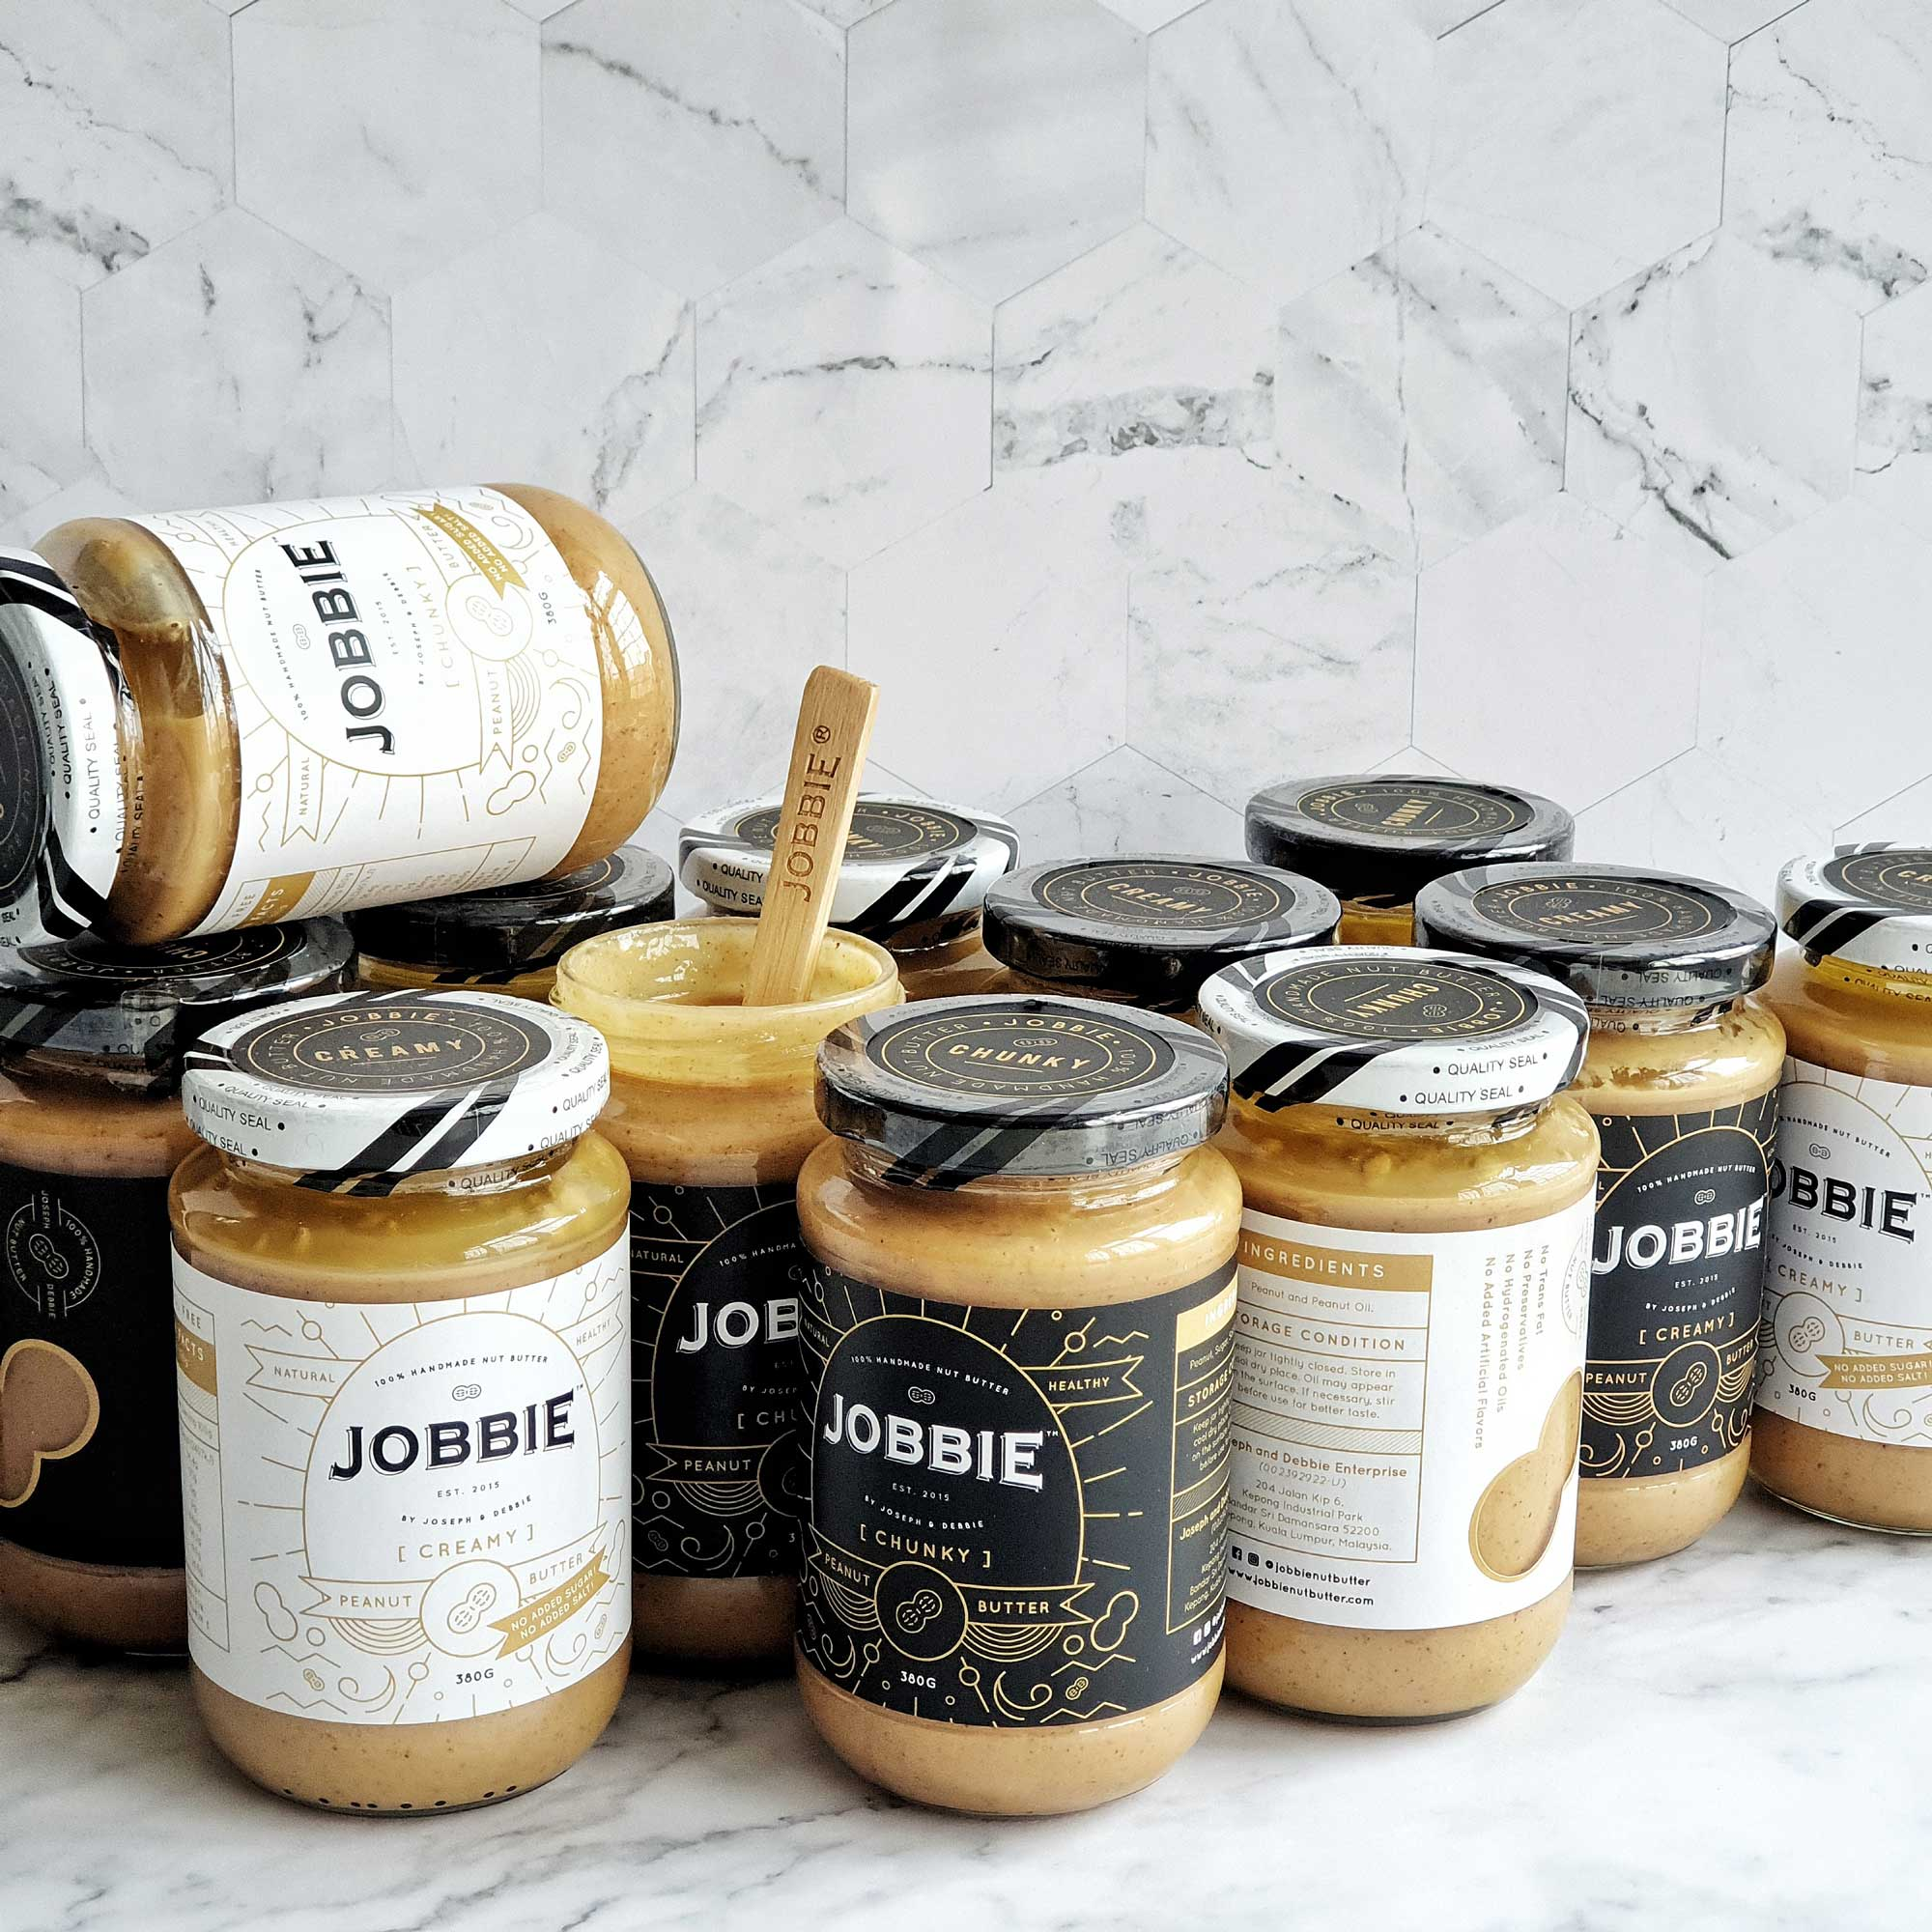 JOBBIE NUT BUTTER - Get natural peanut butter delivered to your doorstep |  - Explore All